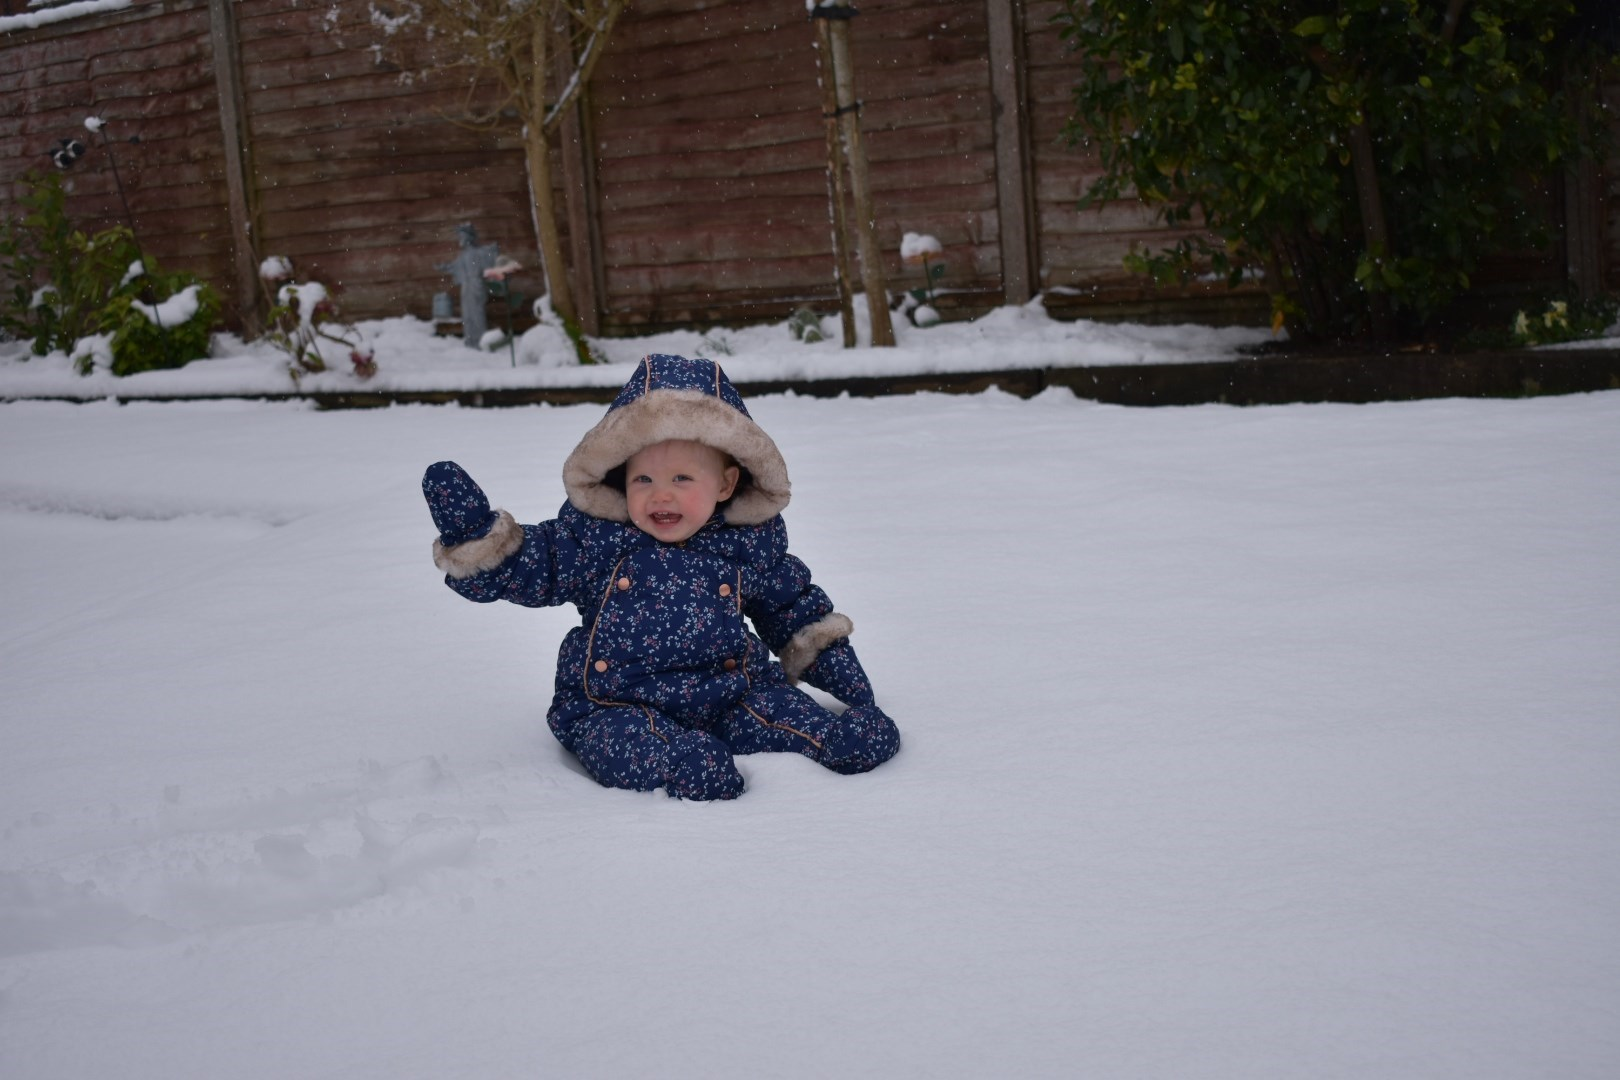 Aria loved playing in the snow ?? we love you and miss you xxx